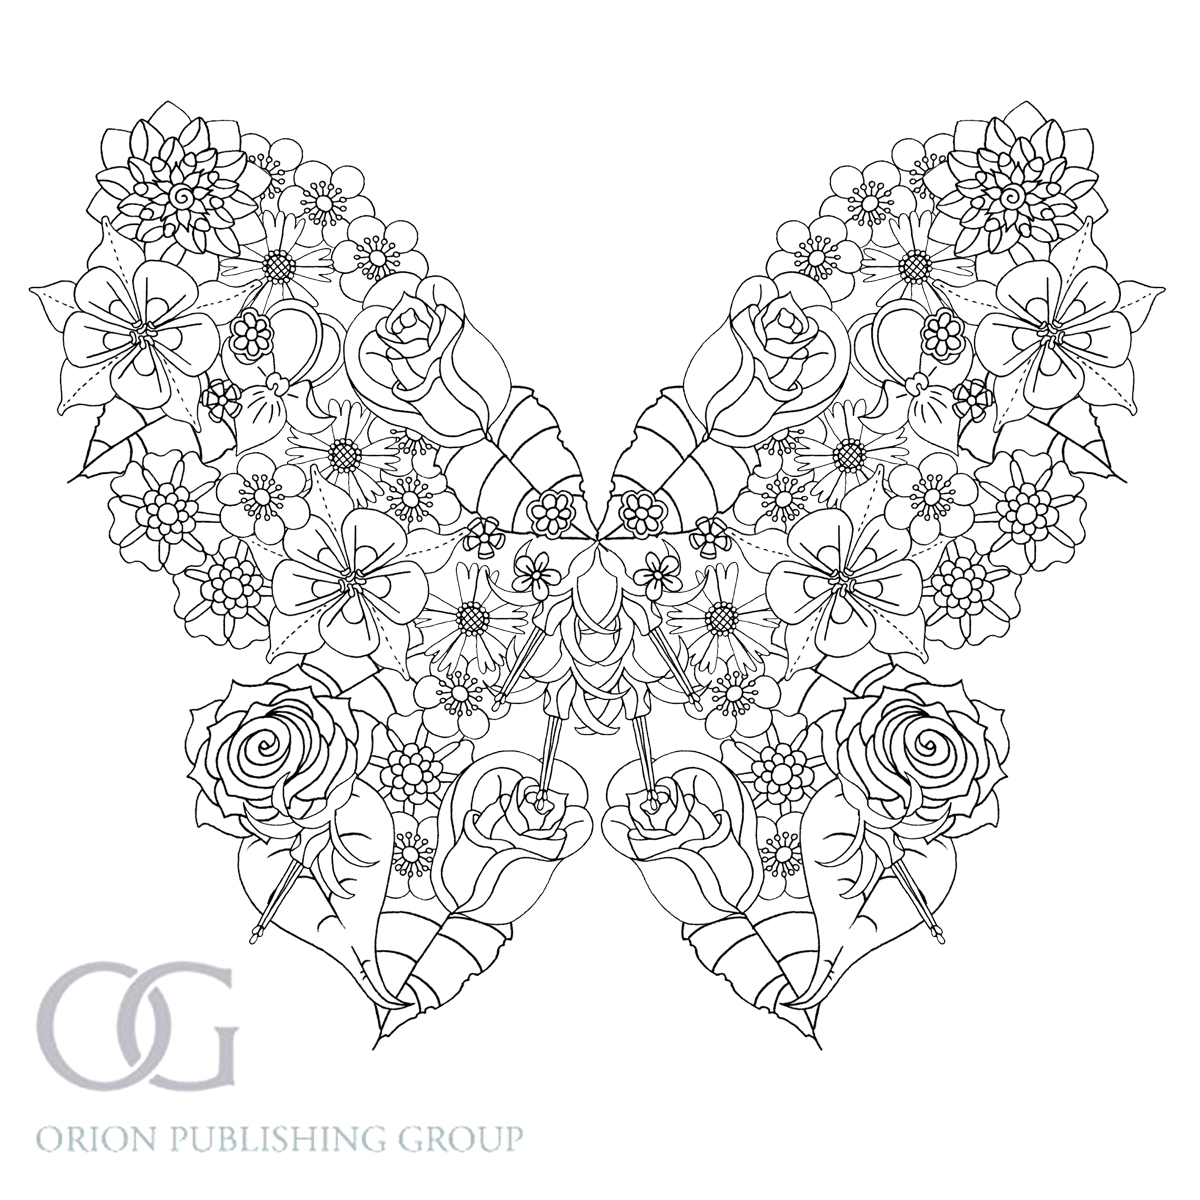 Anastasia Catris » COLOUR ME MINDFUL: BUTTERFLIES PREVIEWS